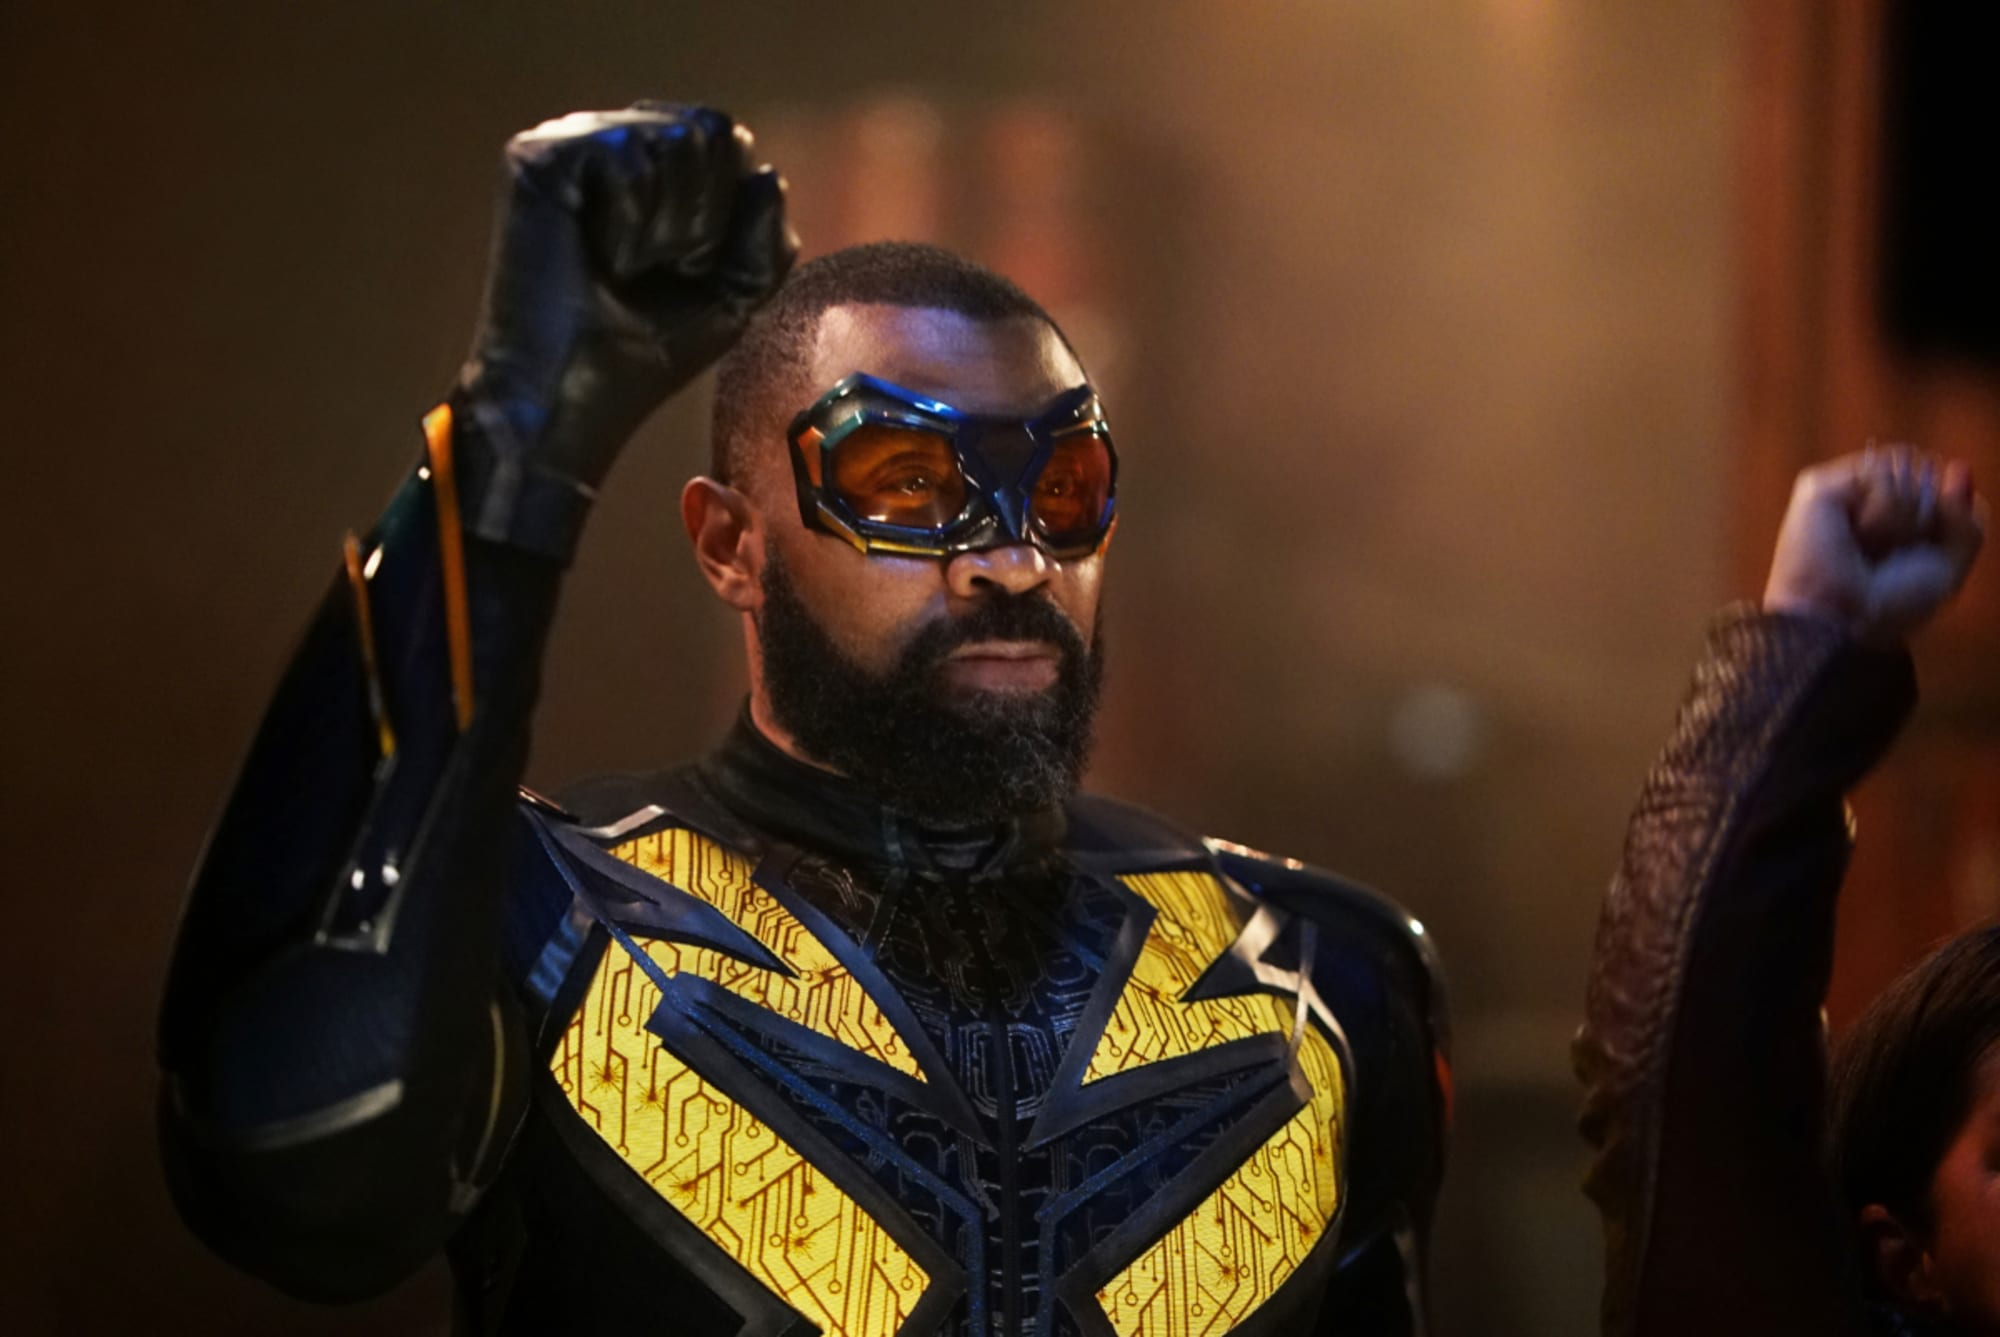 Black Lightning On CW: Season 4 To Mark The End Of The Series!